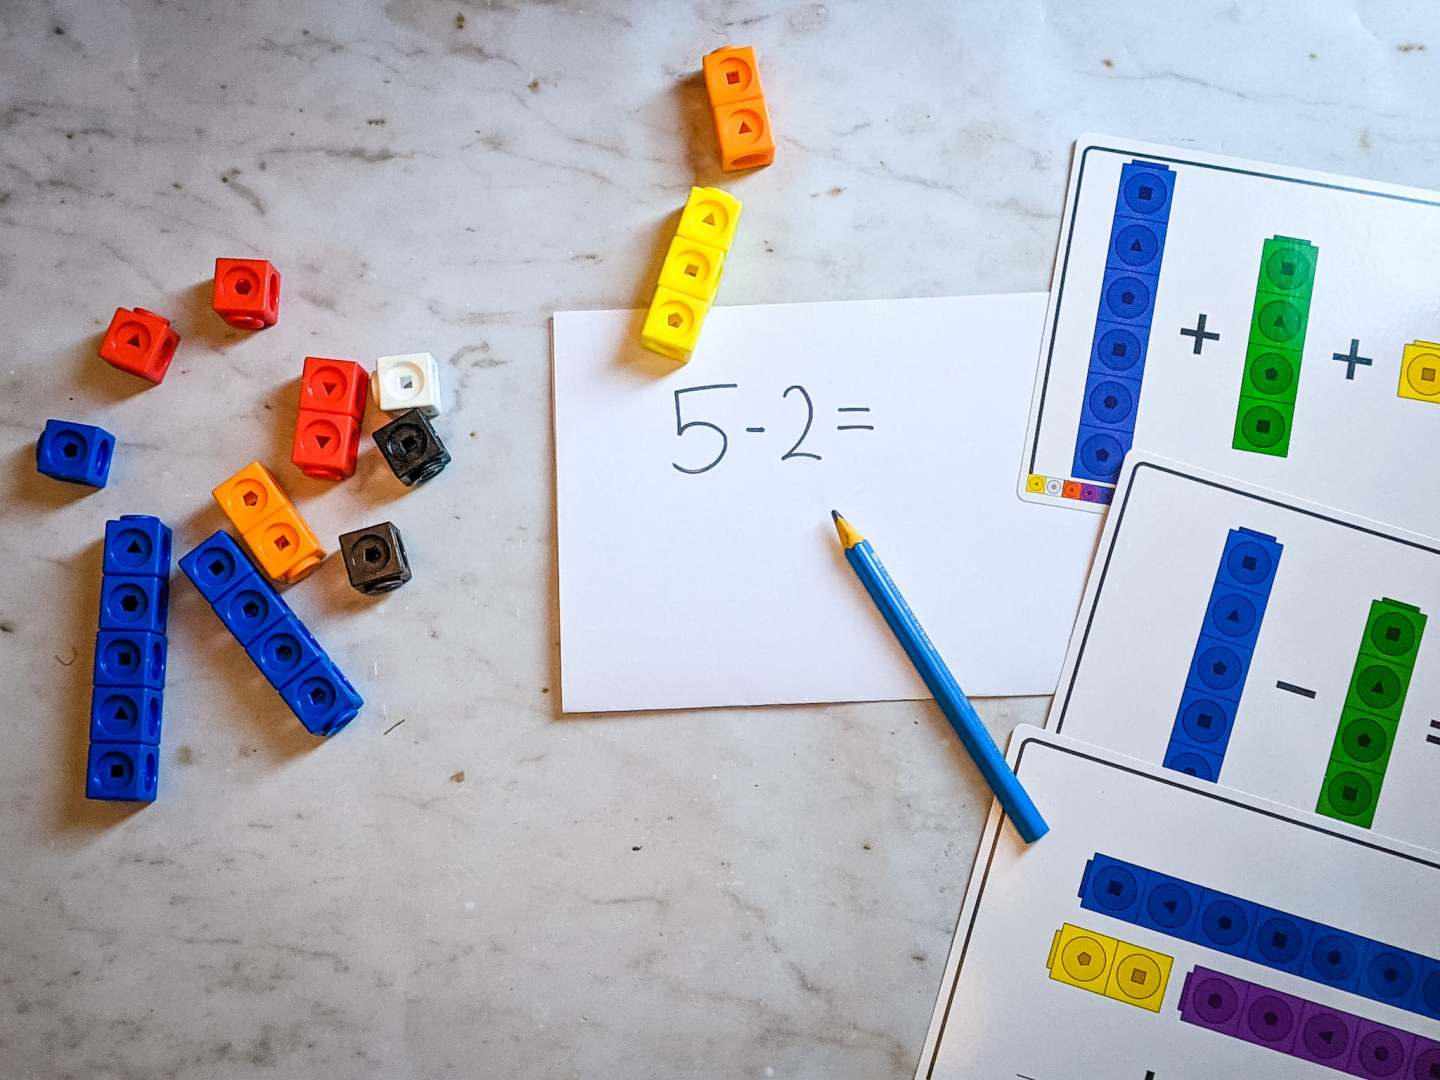 maths visual learning